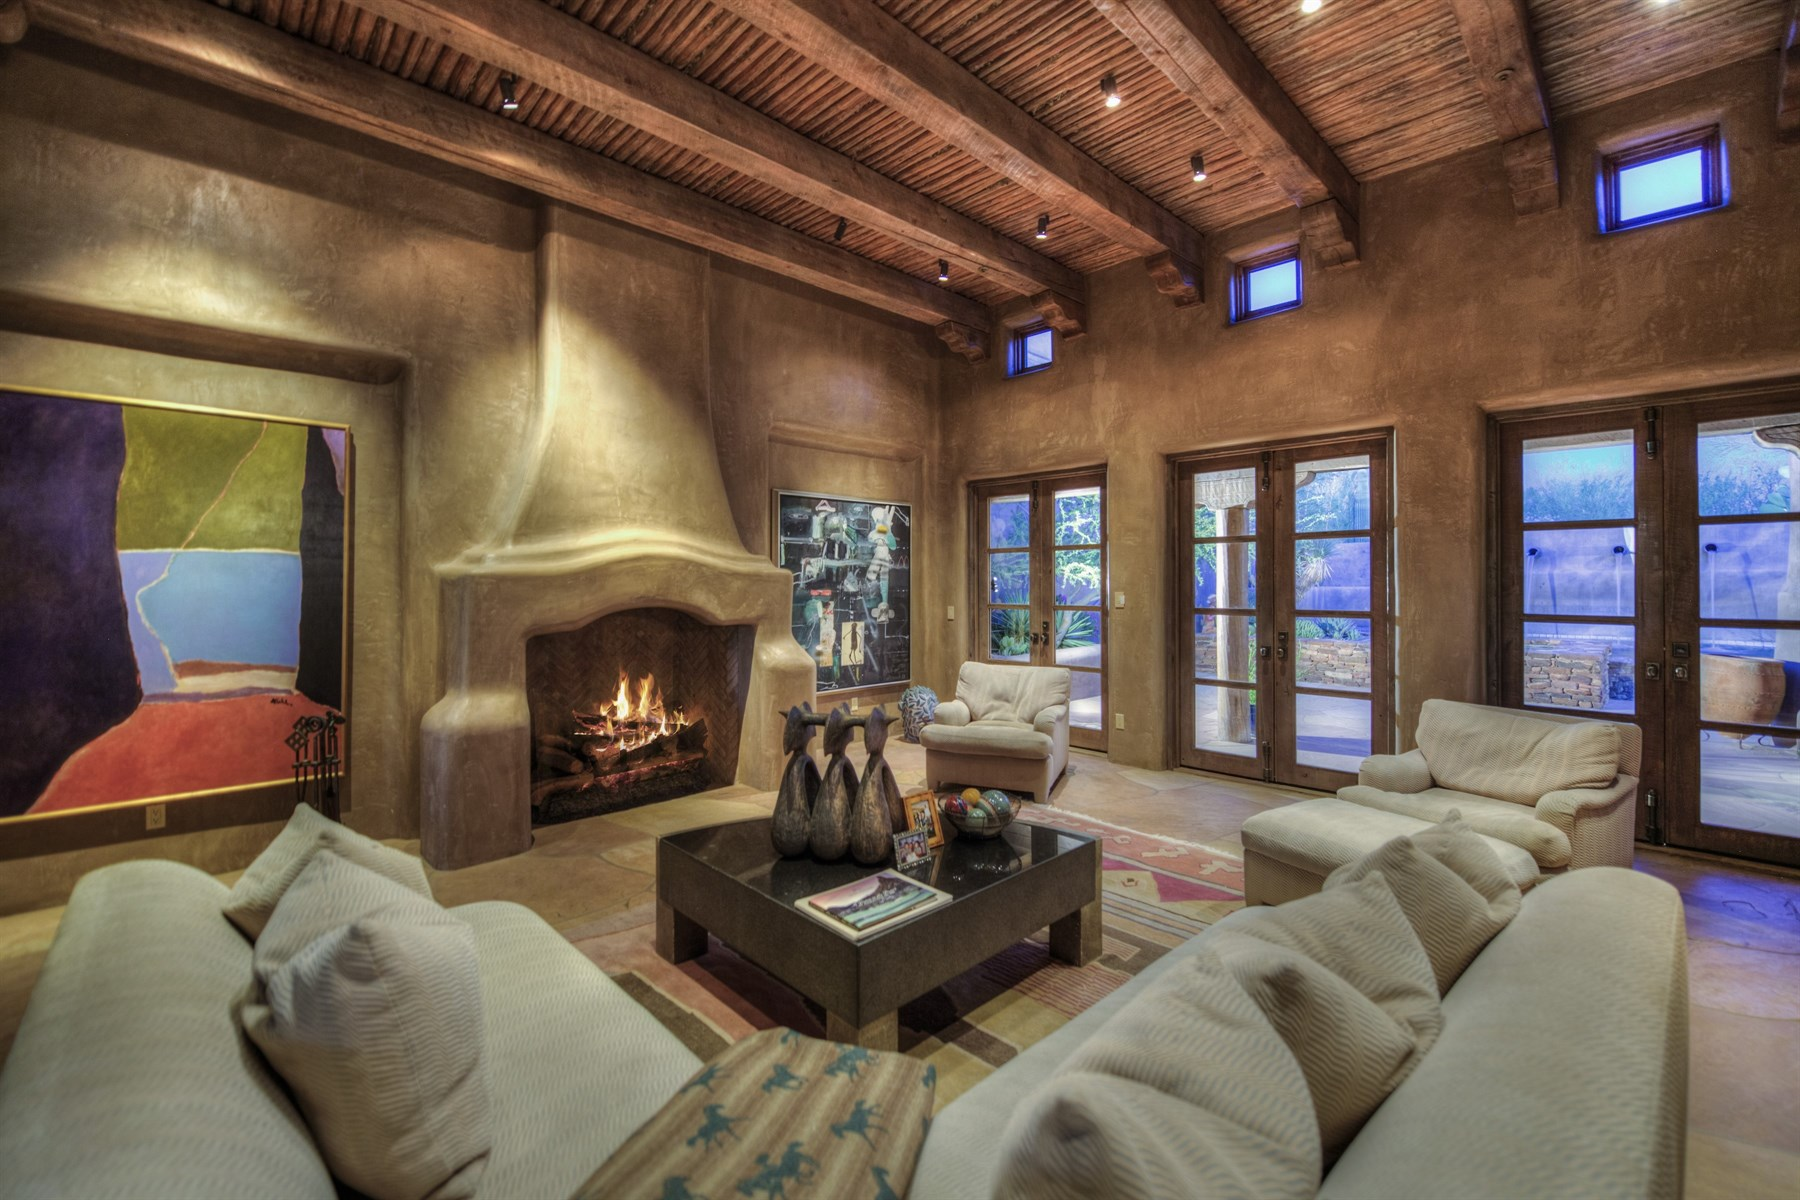 Single Family Home for Sale at Elegant Pueblo Revival home, masterfully designed by architect German Robledo 10040 E Happy Valley Rd 18 Scottsdale, Arizona 85255 United States